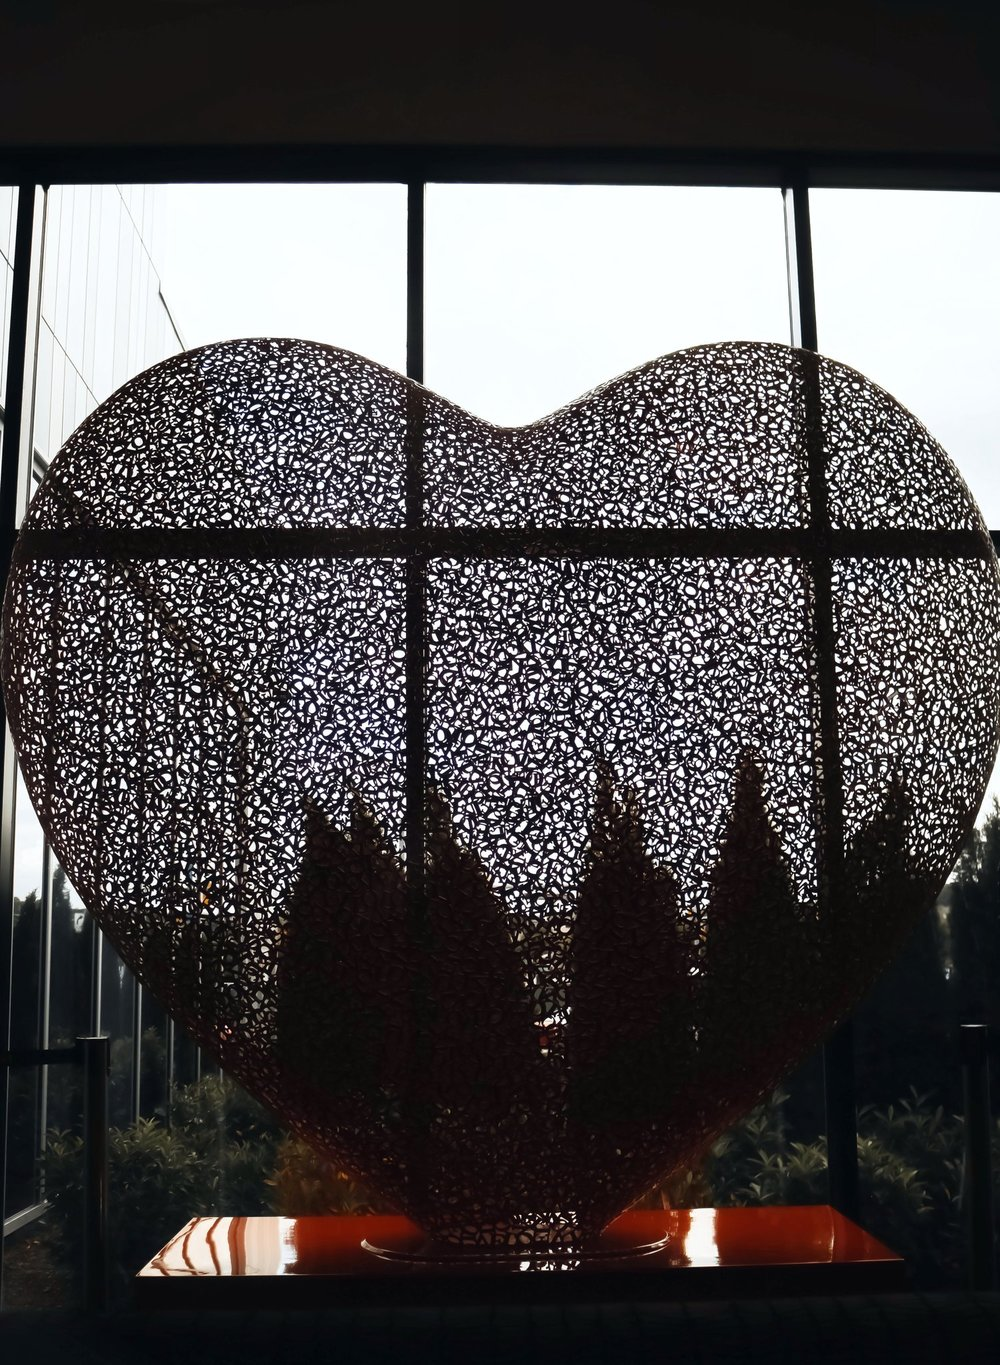 Live Hotel Casino Heart Sculpture Artwork Isabel Alexander